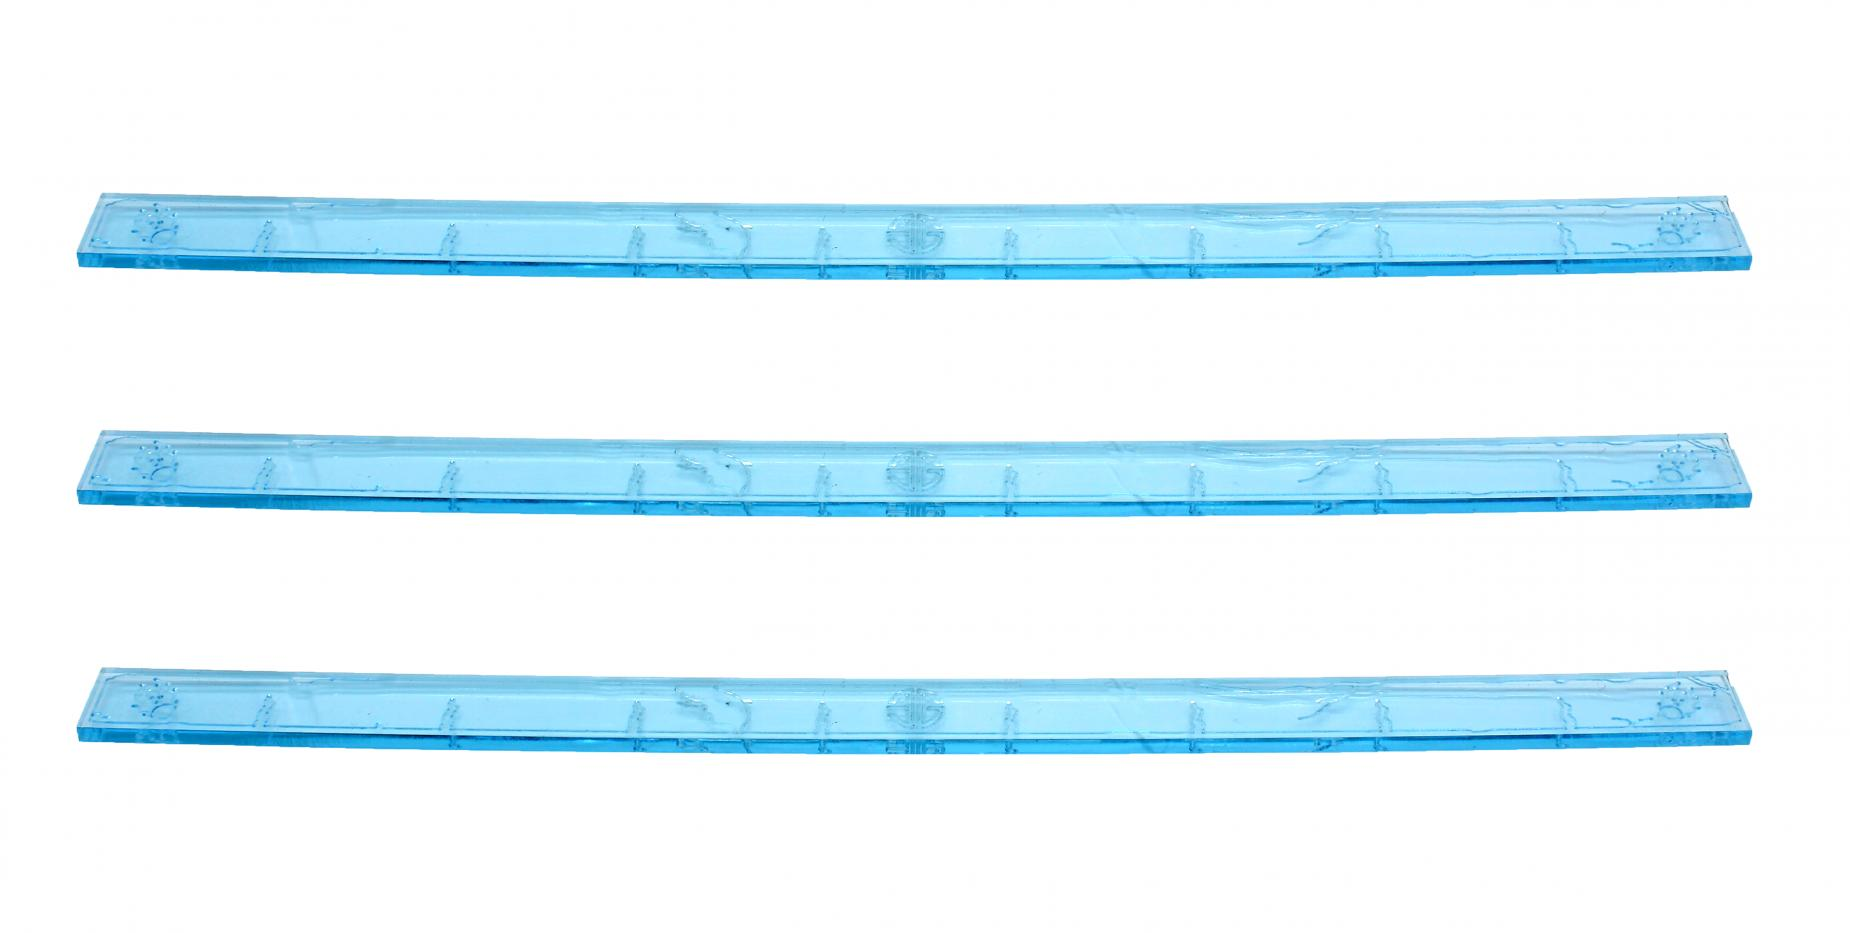 Element Essentials 9 Inch Acrylic Measuring Stick (Pack of 3)